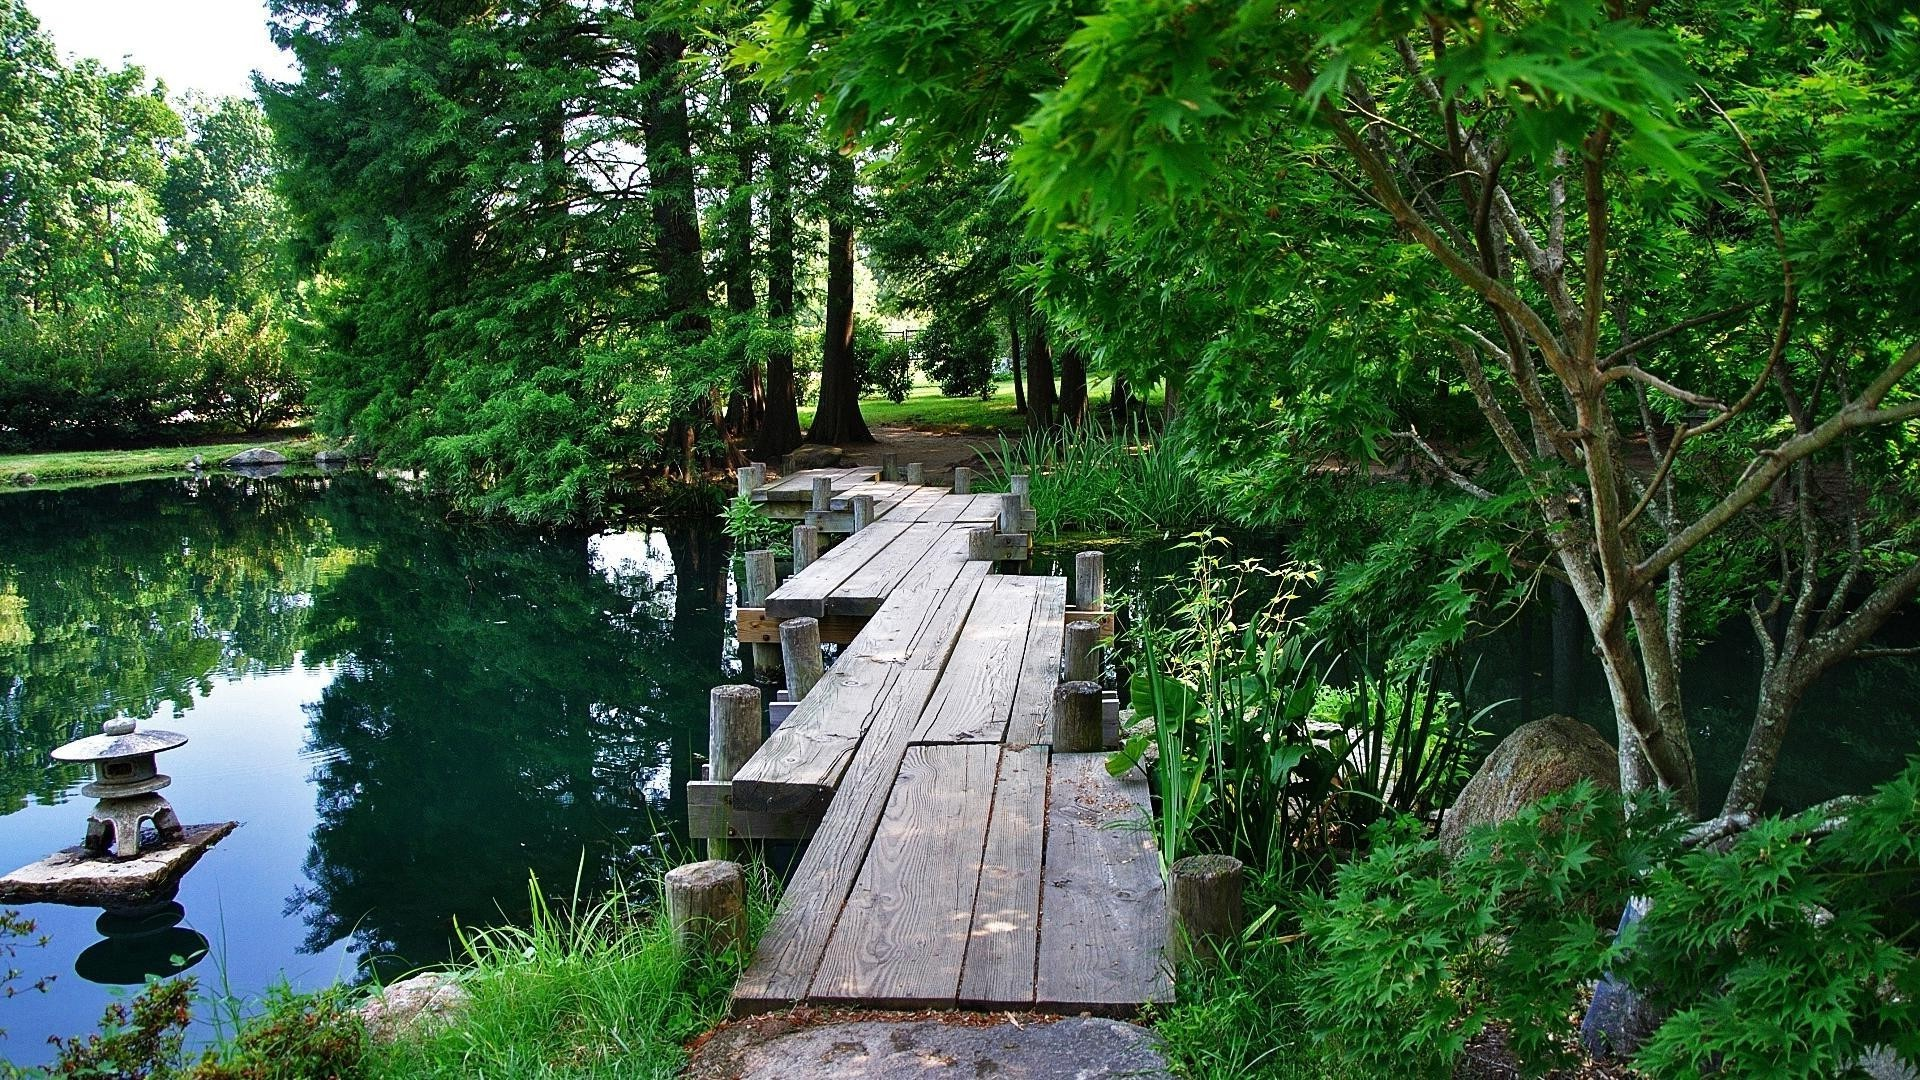 lake wood nature tree water park summer leaf landscape outdoors bridge travel guidance garden grass river environment lush flora composure